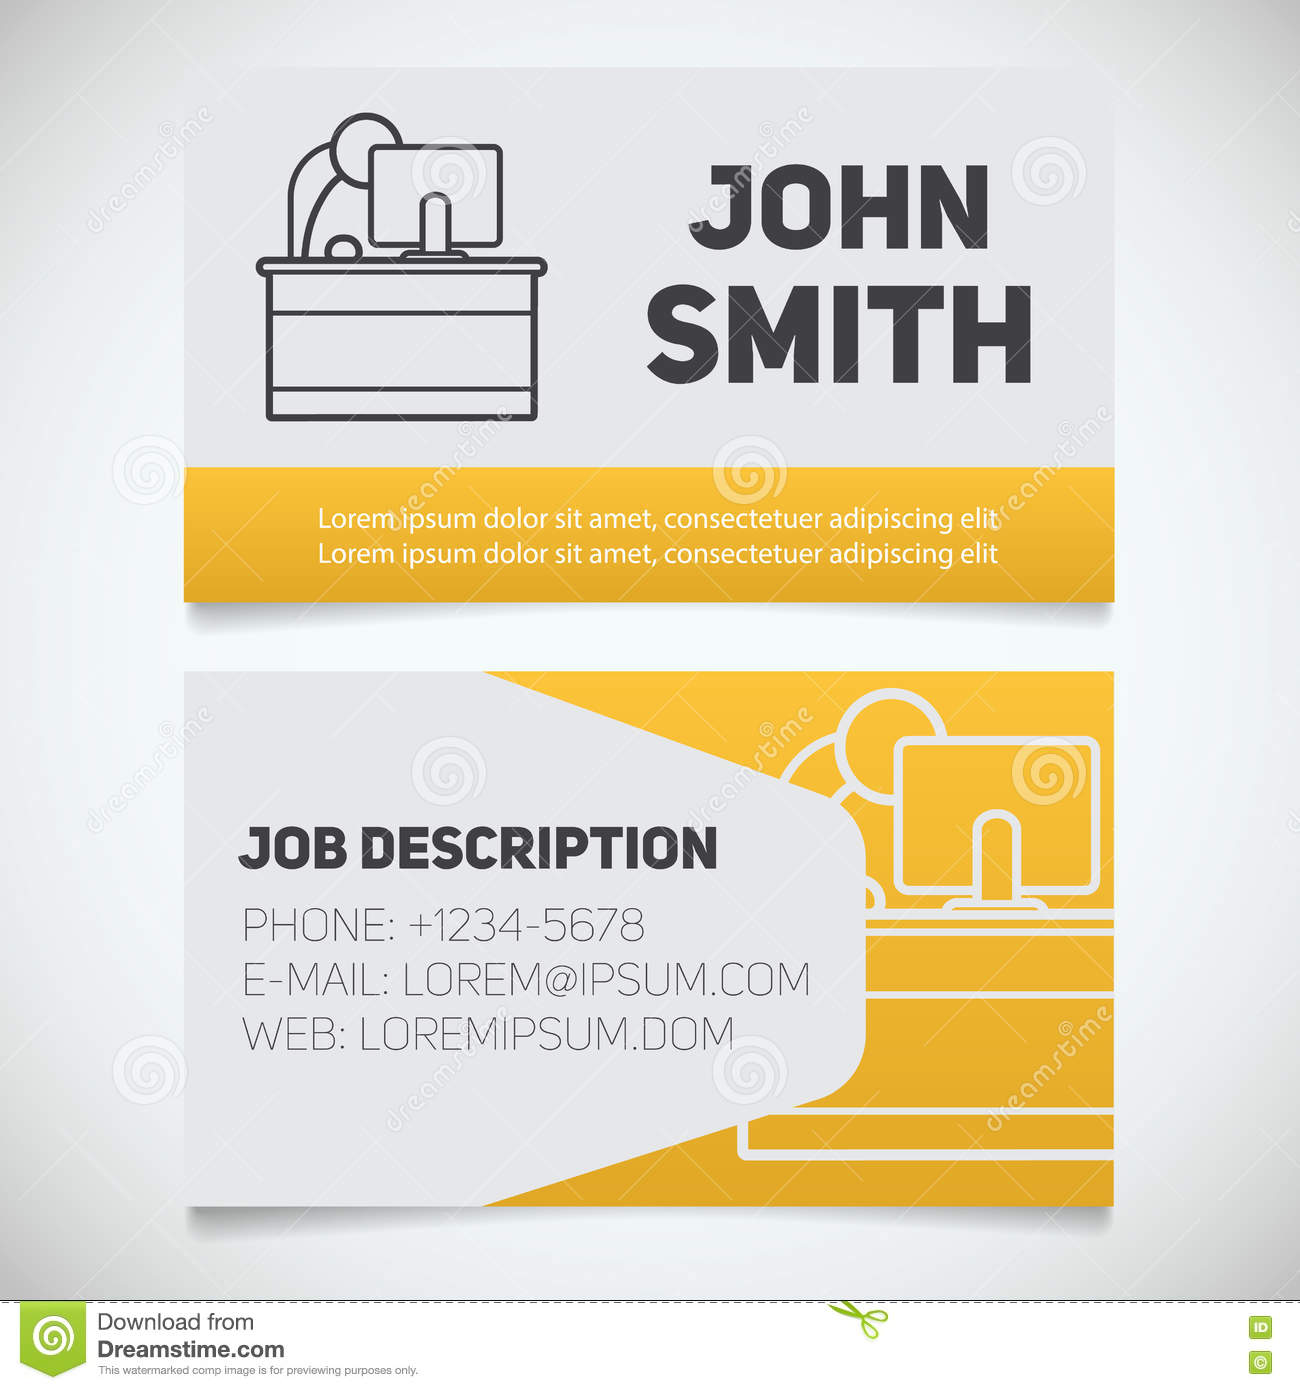 Business card print template with office manager logo easy edit download business card print template with office manager logo easy edit manager programmer flashek Image collections